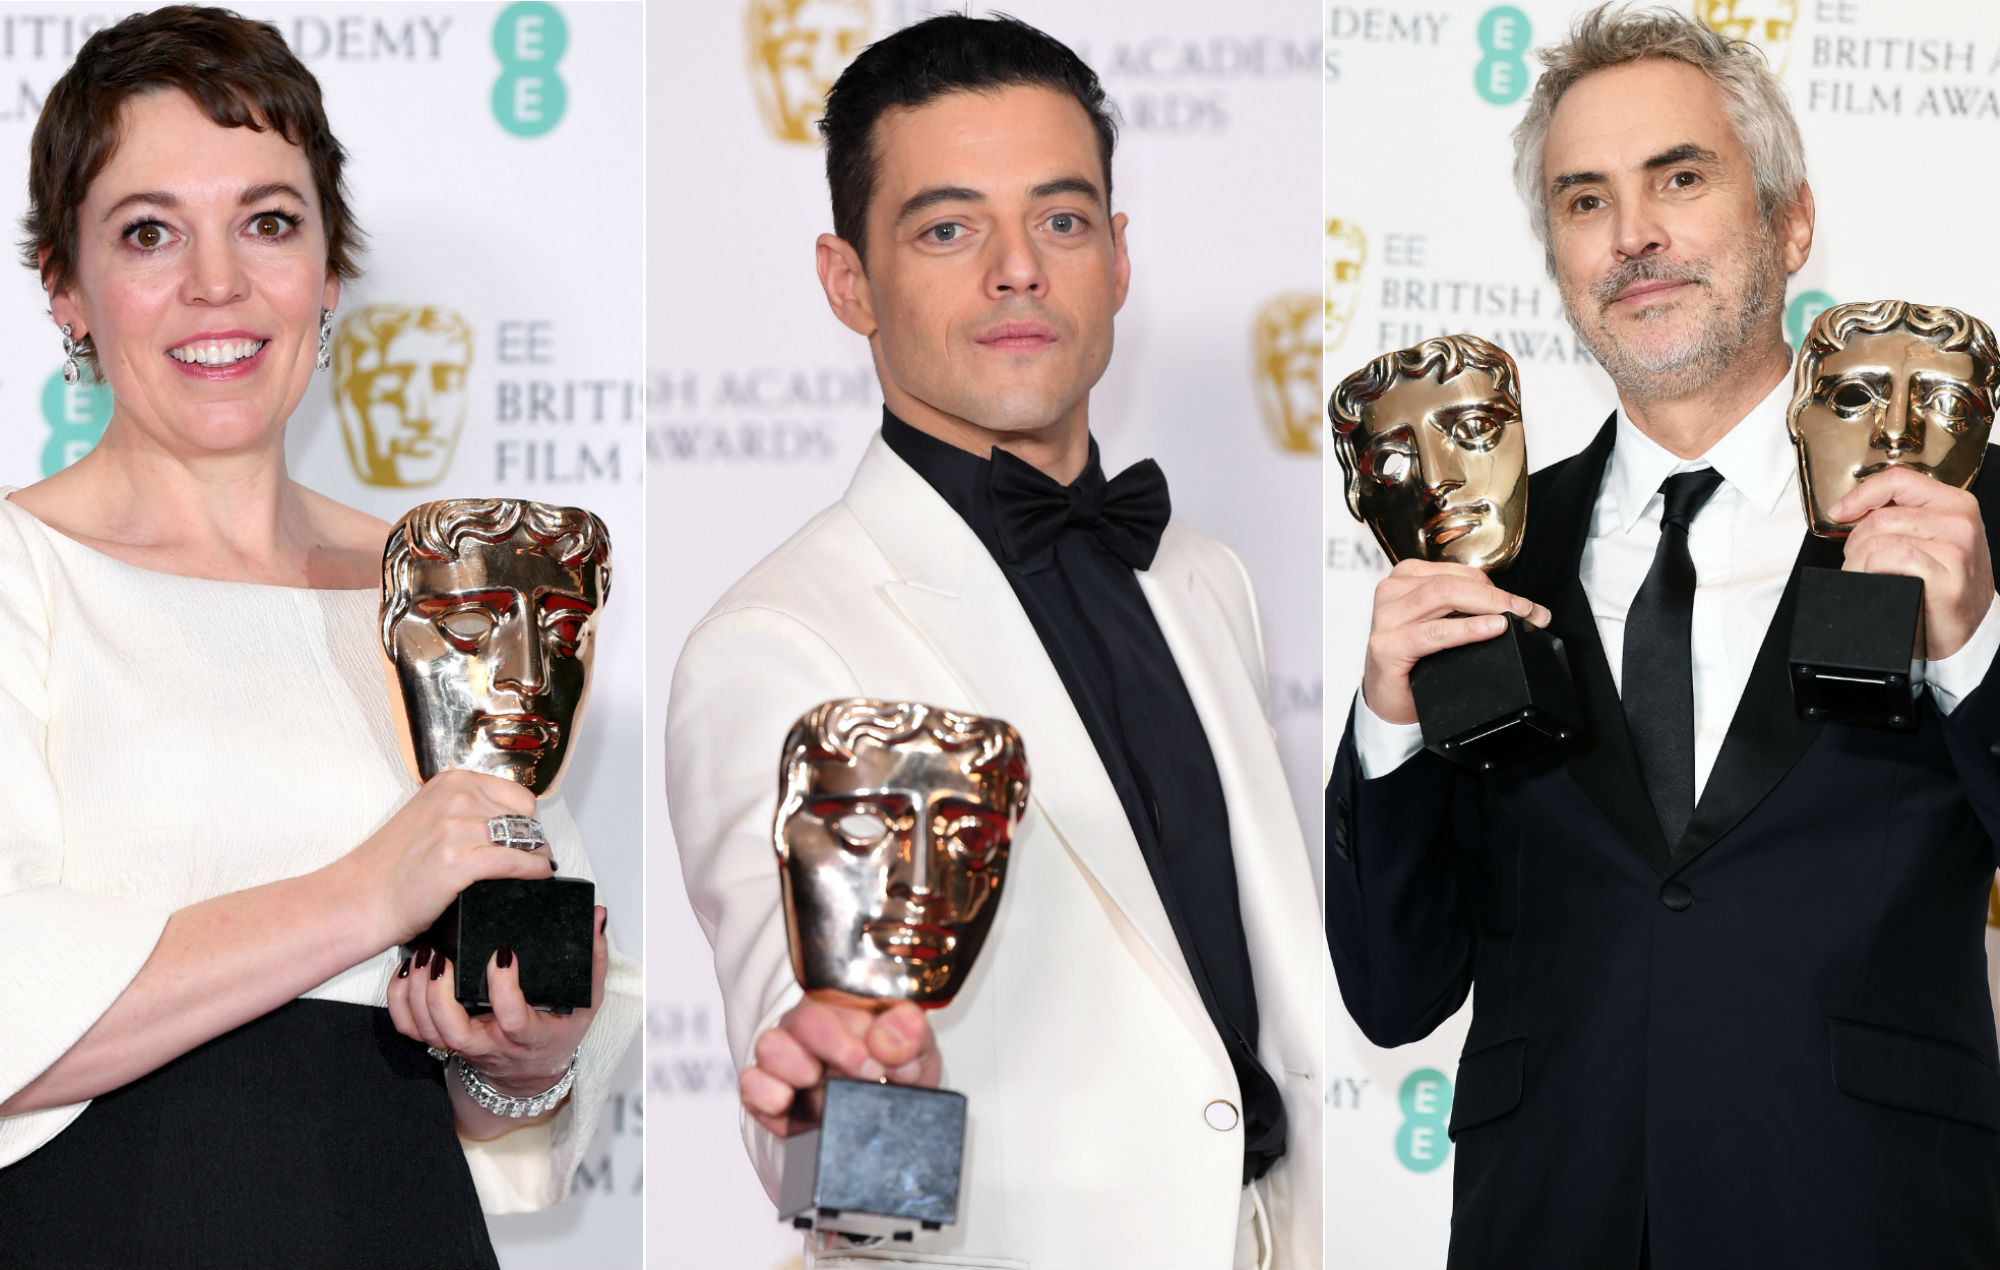 Baftas 2019: Here Are All The Winners Of The 2019 BAFTAs